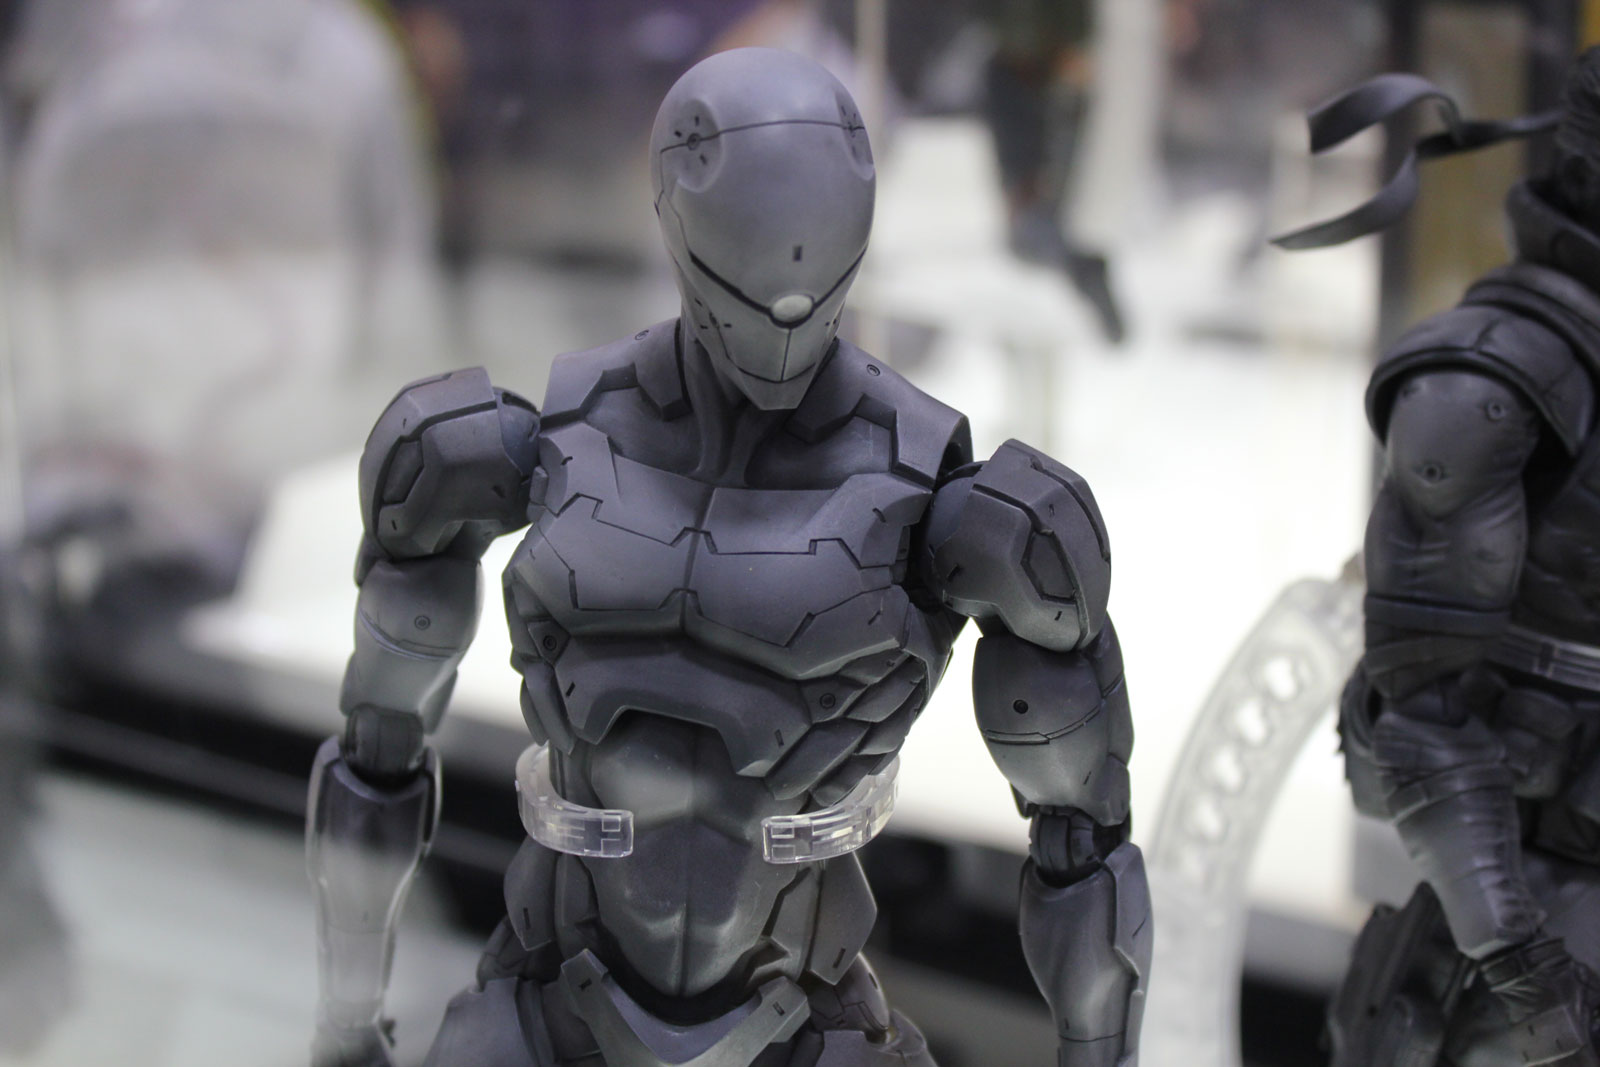 File:Play arts grayfox detail.jpg